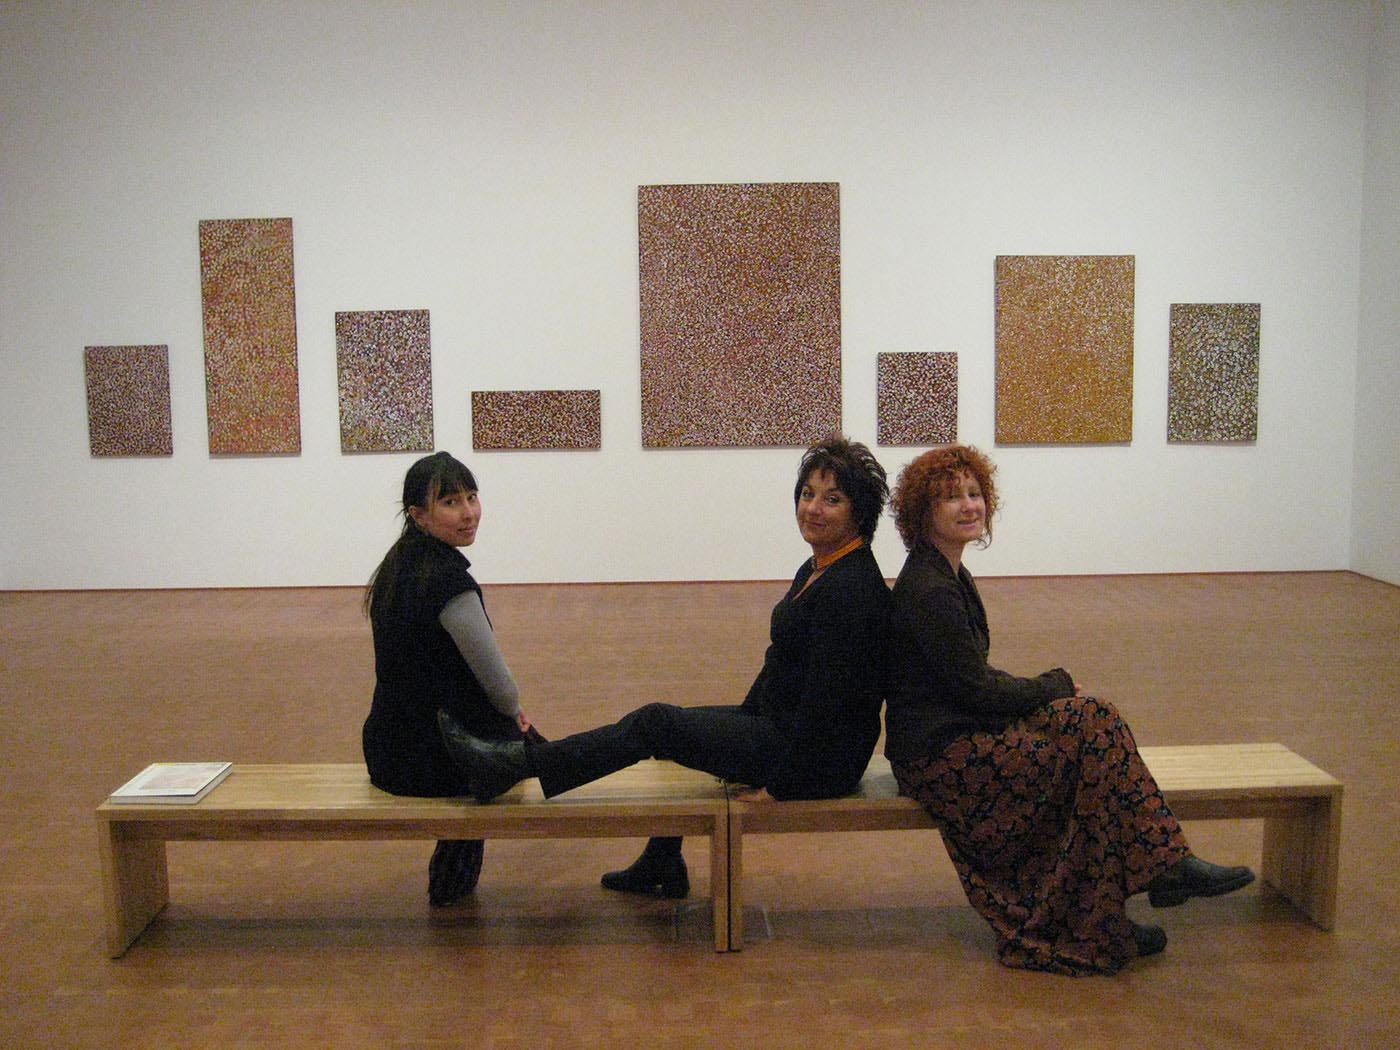 Three women sitting on a bench in a gallery space with paintings mounted in the wall. - click to view larger image